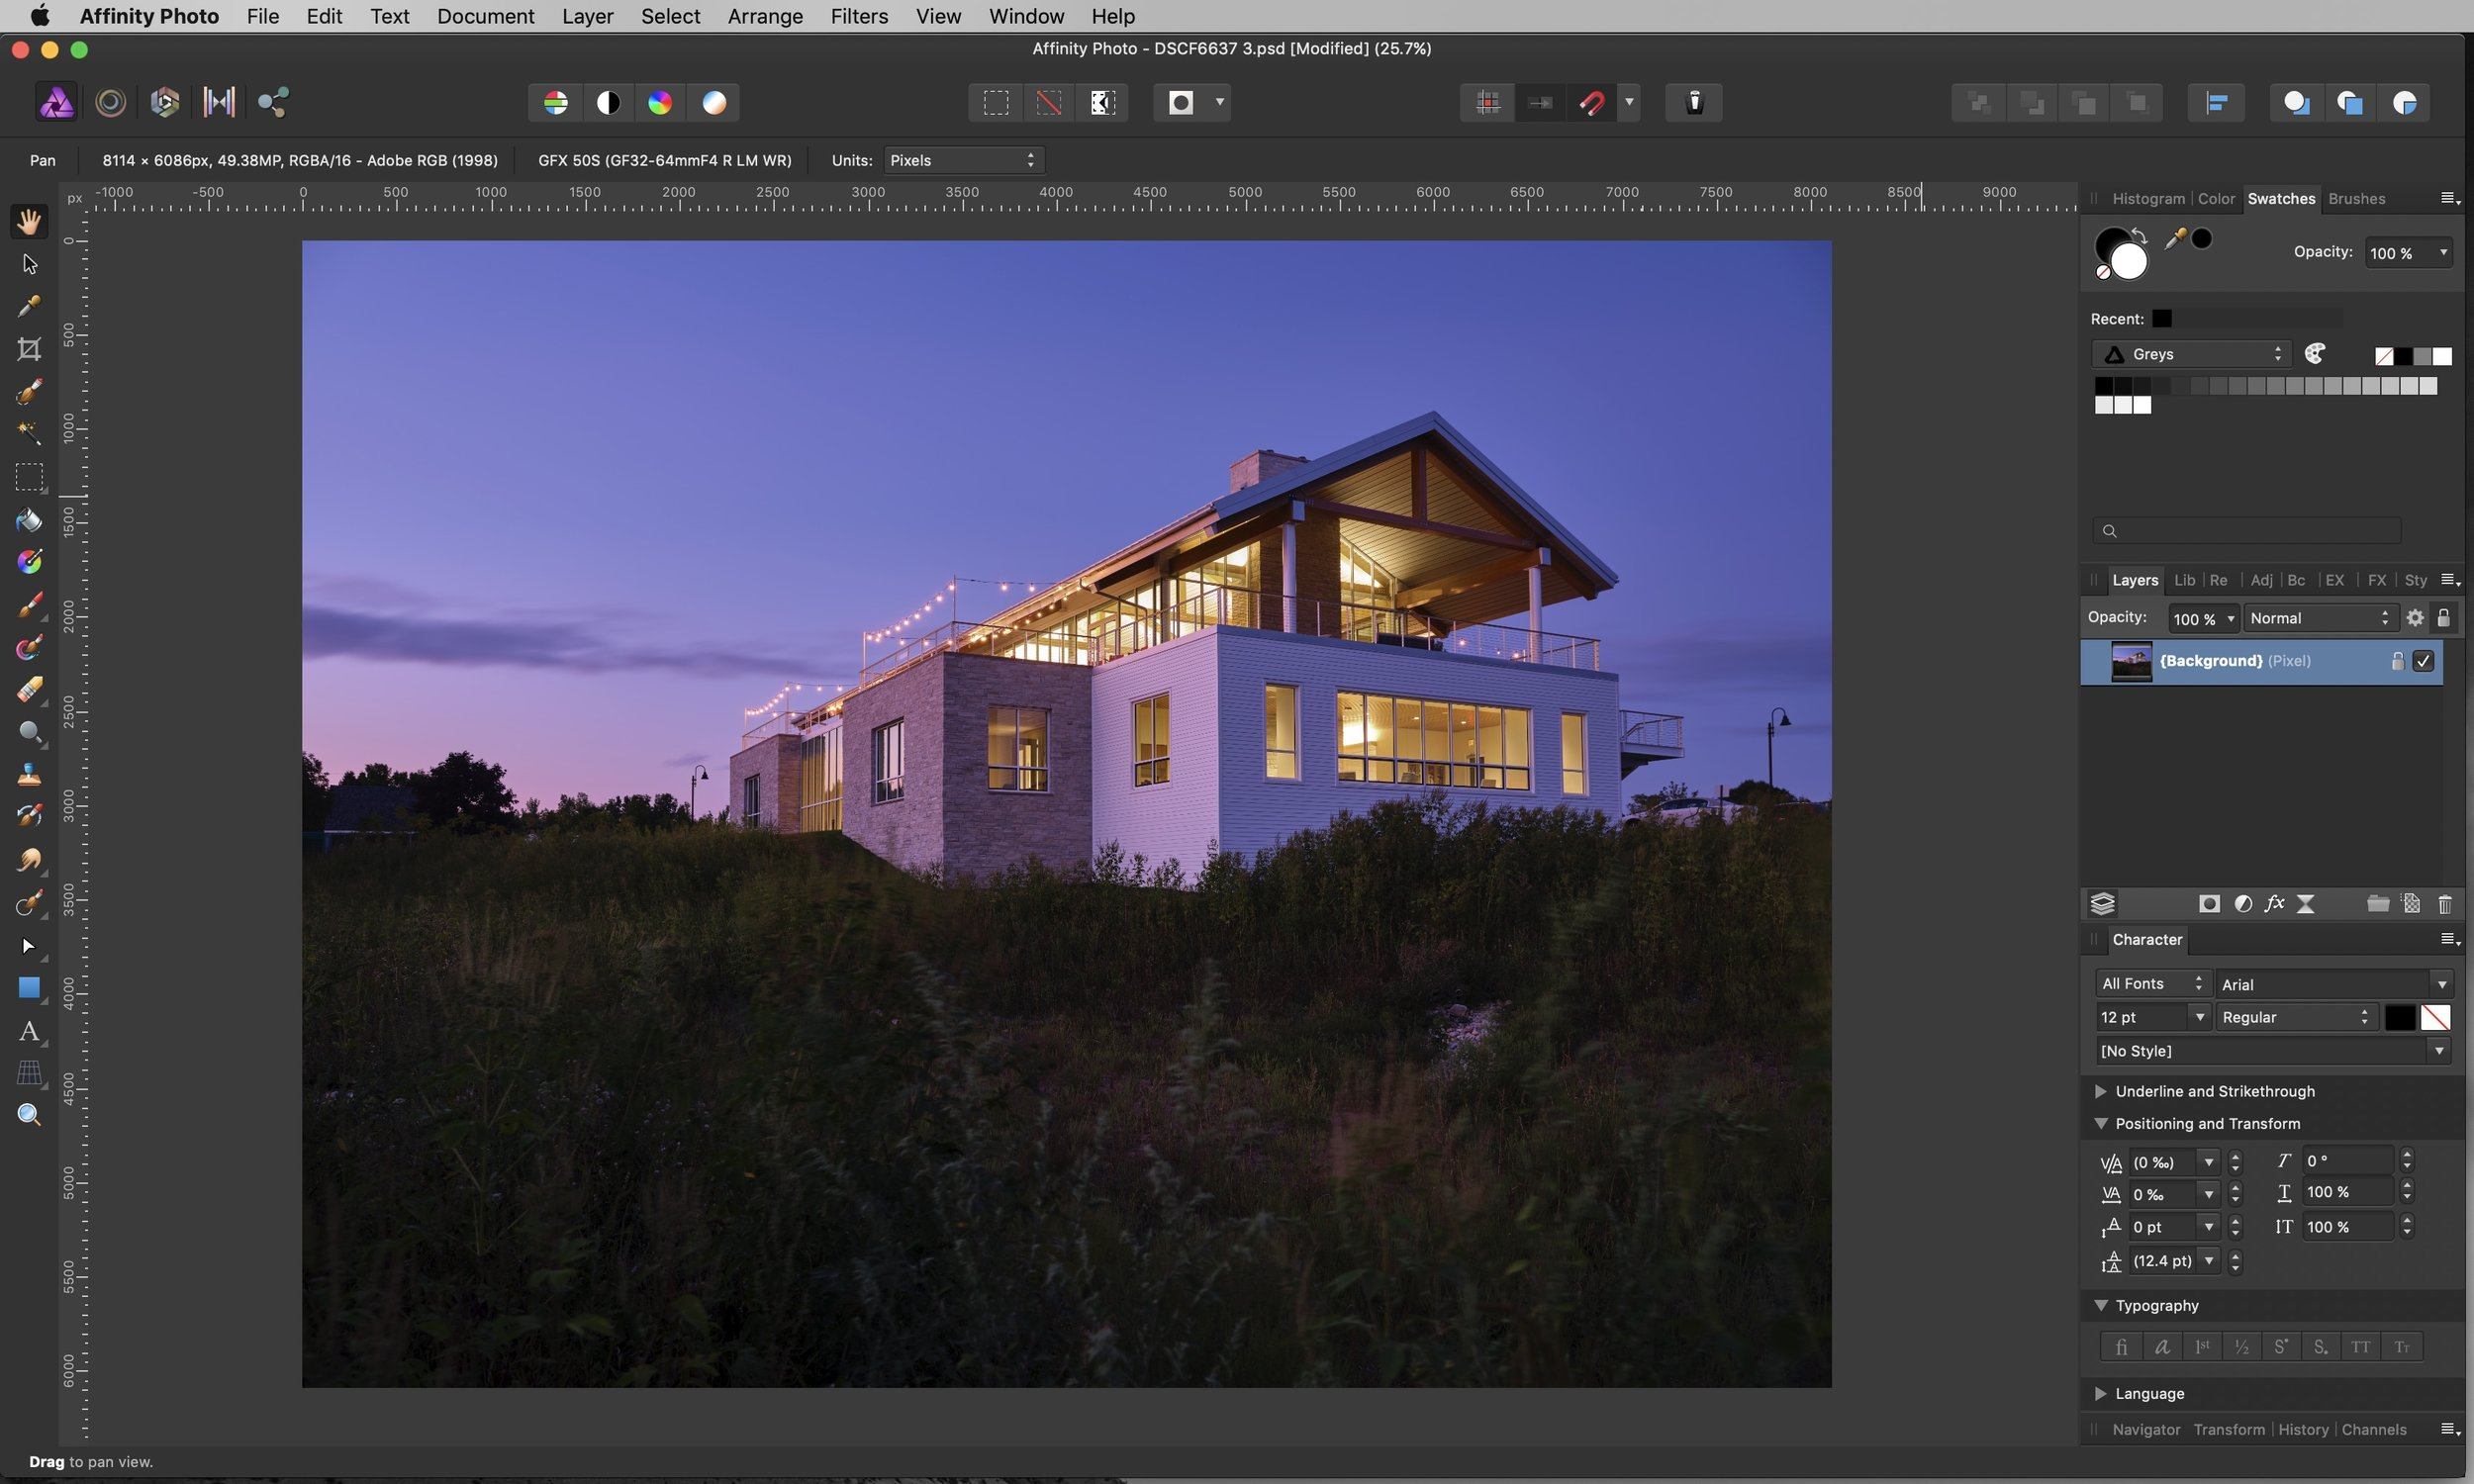 If you've never played with Affinity Photo, you will see that it is very similar to Photoshop. I found it was very easy to begin working in Affinity Photo and would highly recommend you download a trial [ link here ] and get your hands on it. I'm sure you'll find that you really enjoy it too.